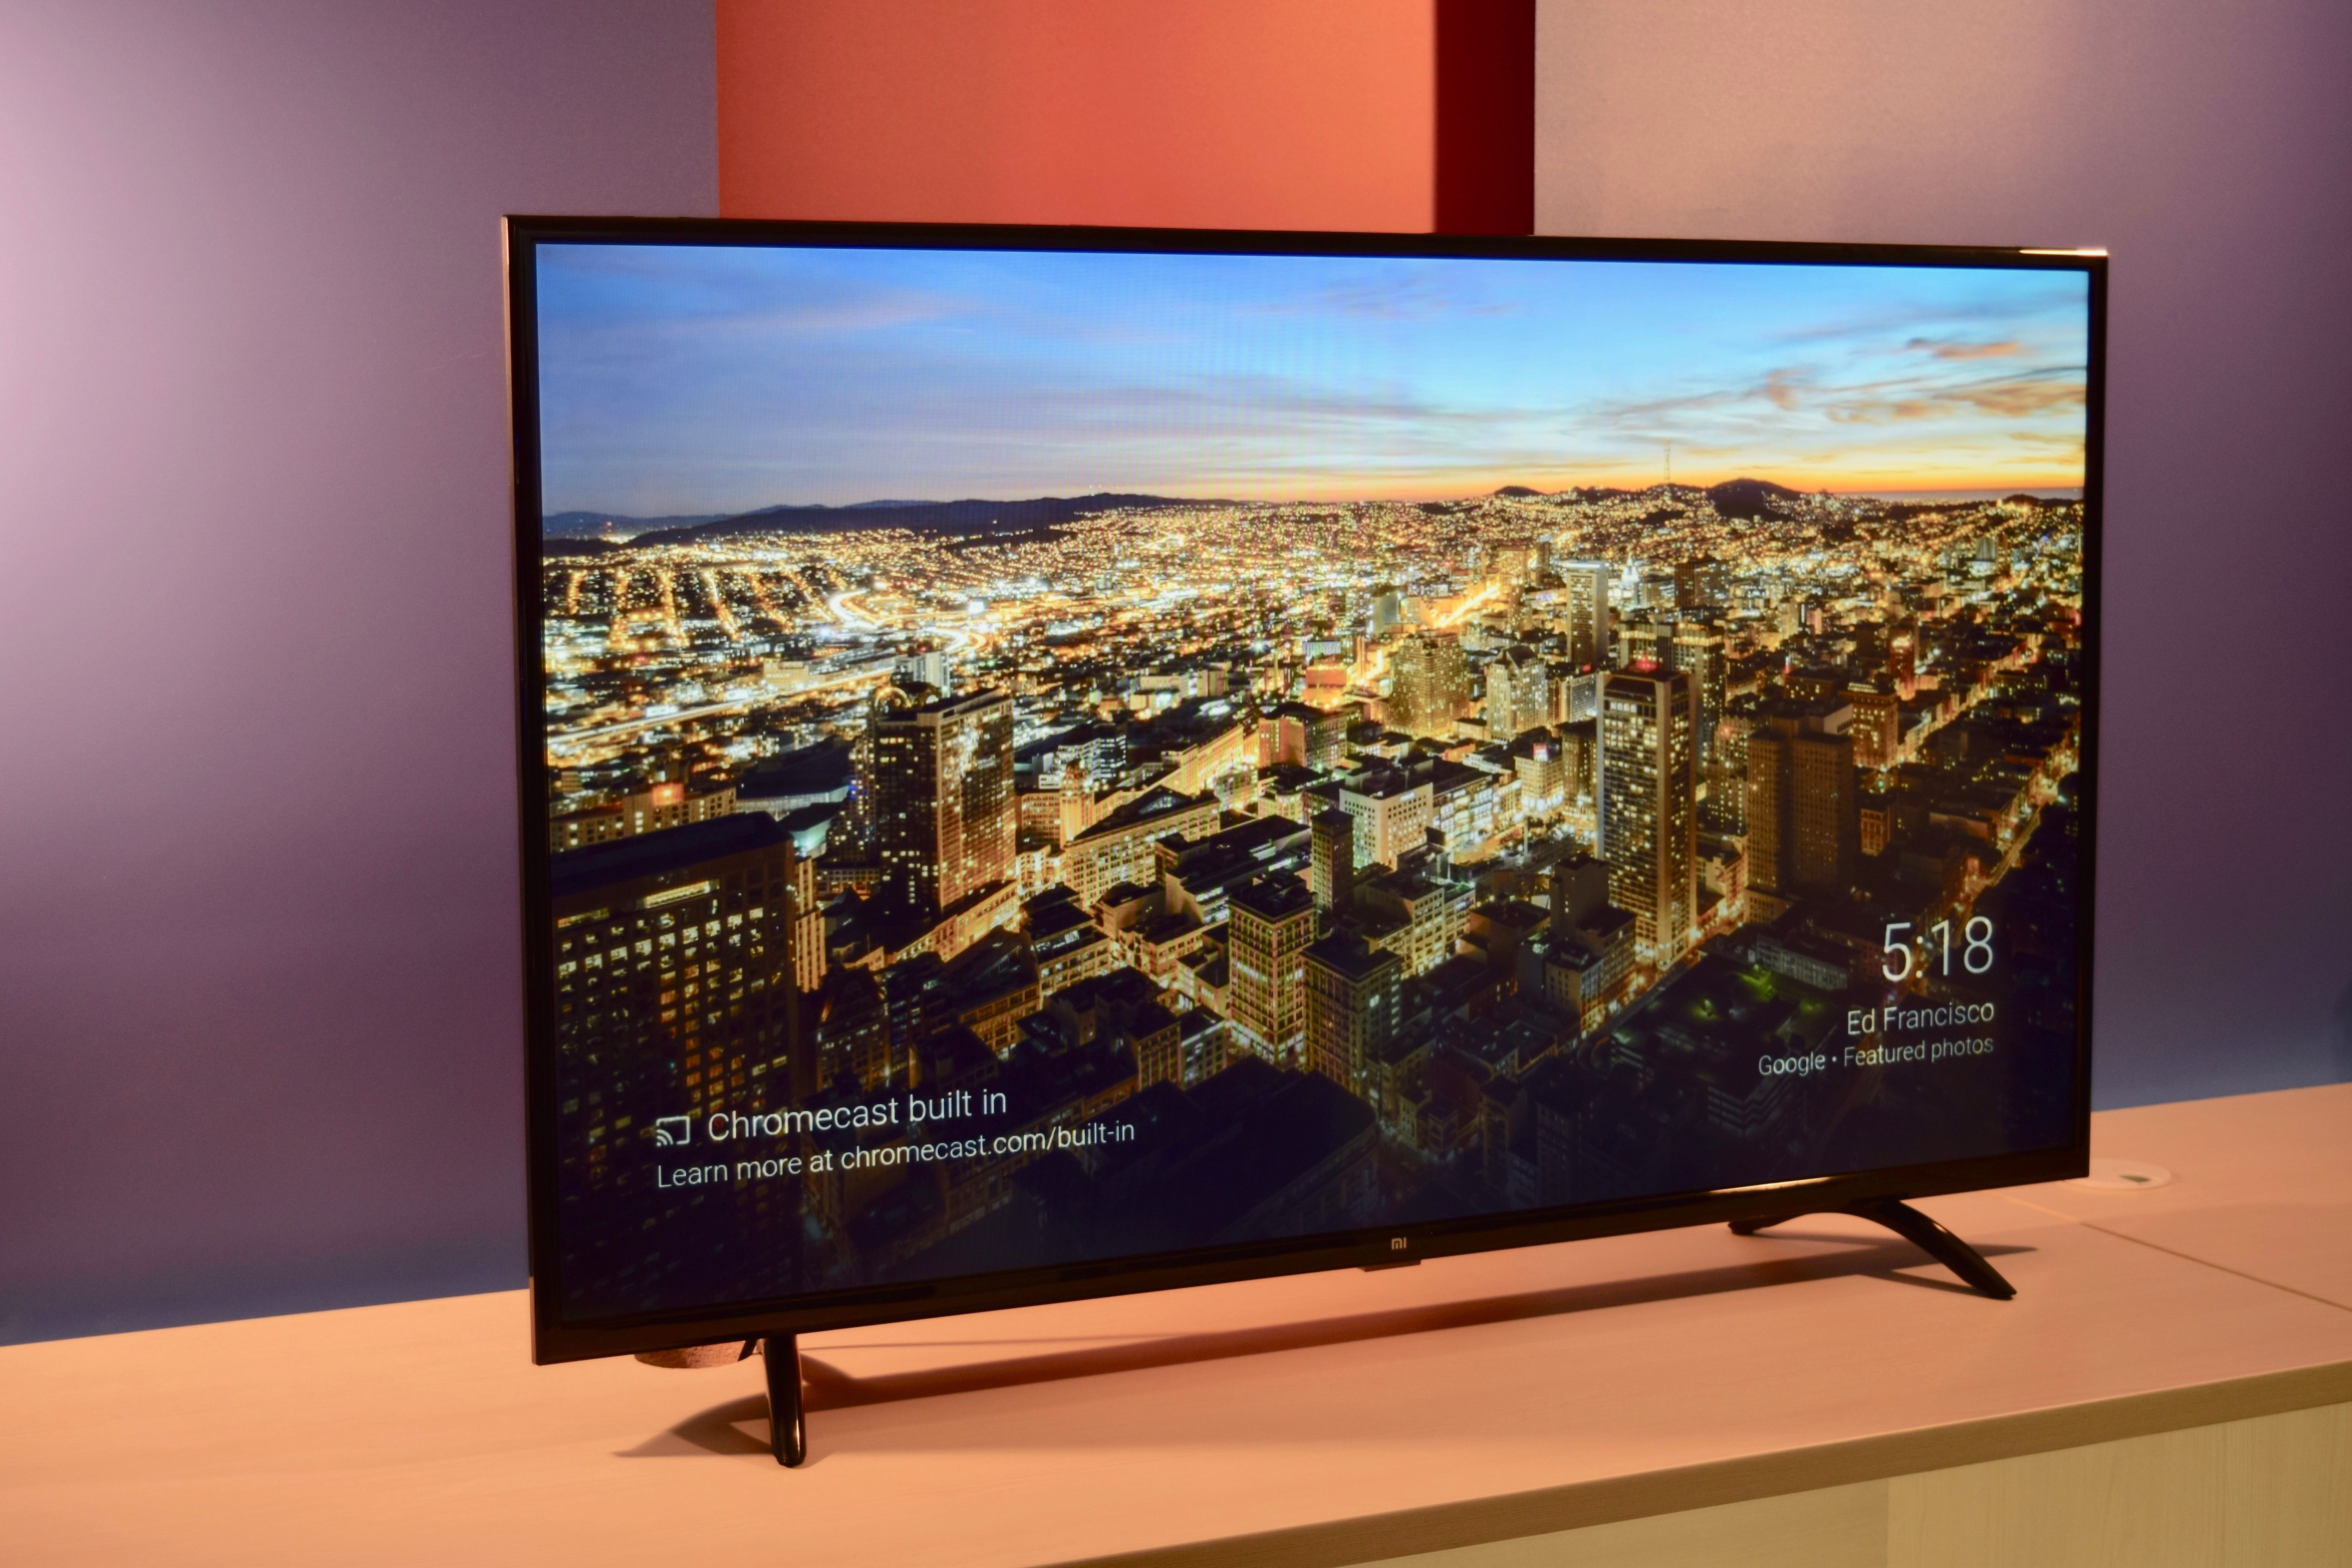 Xiaomi Mi LED TV 4A Pro 43 Review: No Netflix And Chill - MySmartPrice